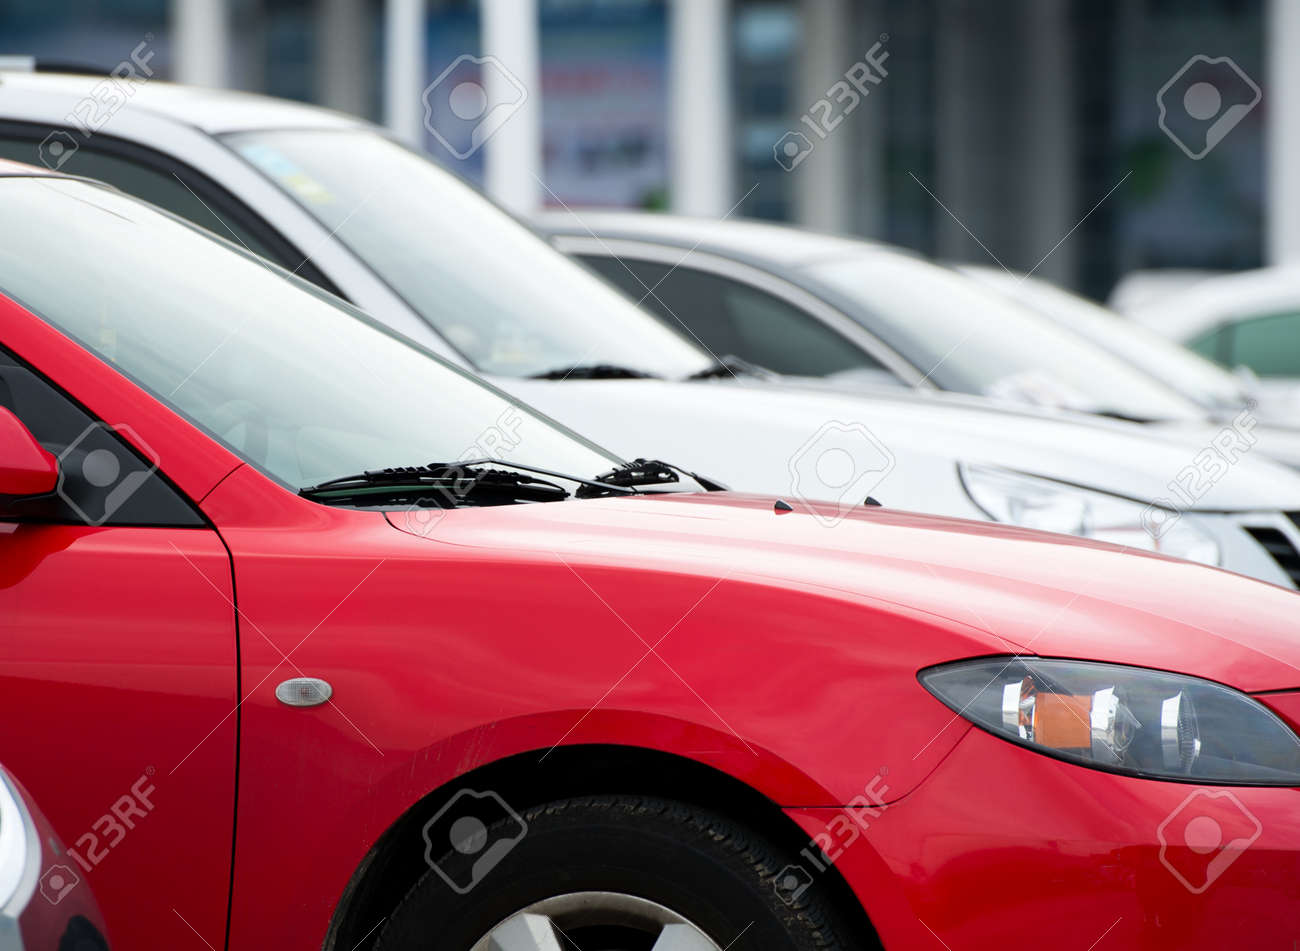 many cars parked in a row. Stock Photo - 16500984